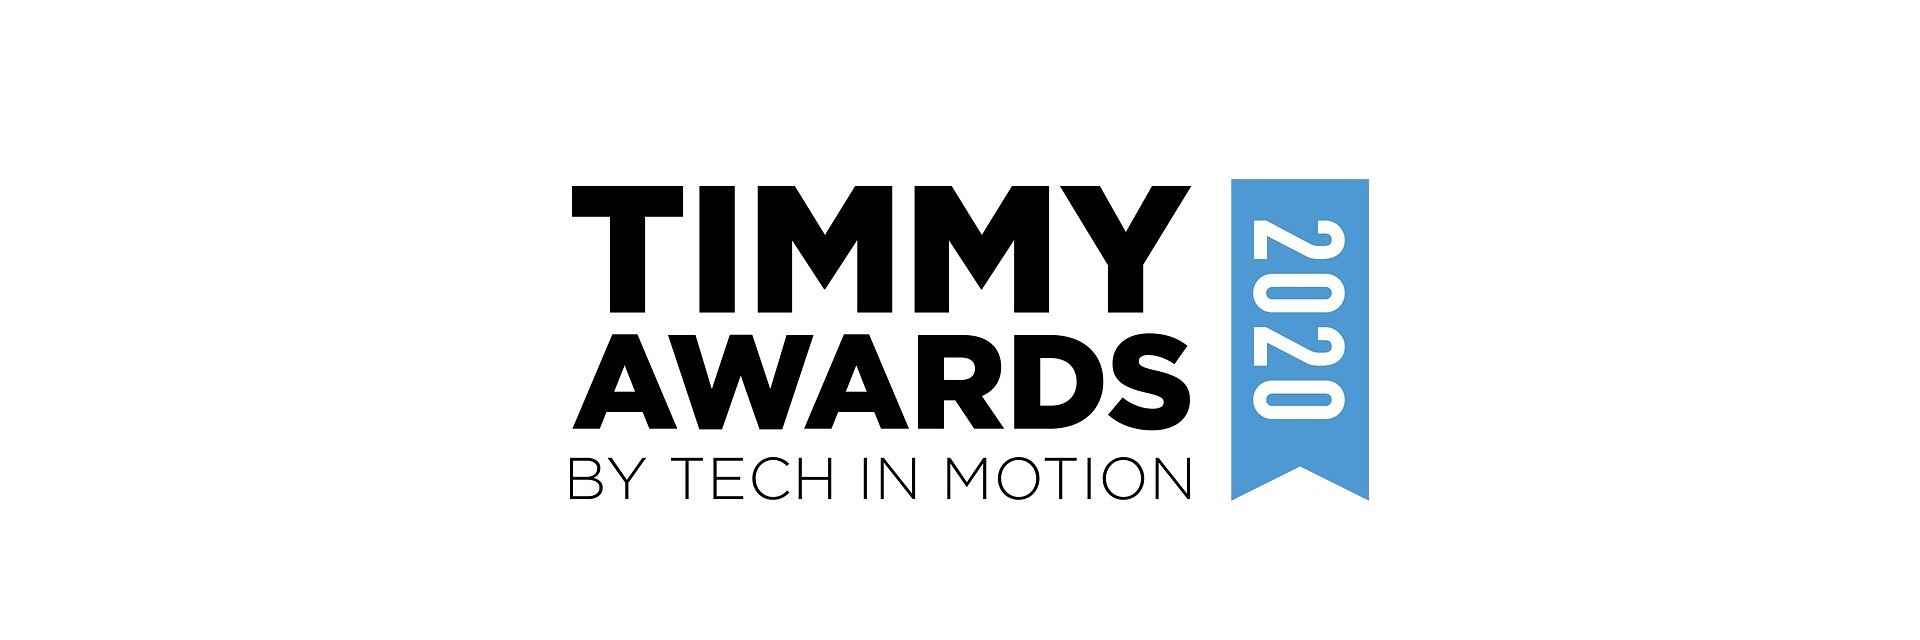 Loop Media, Inc. Chief Product Officer Liam McCallum Announced as Best Tech Manager Finalist for Timmy Awards